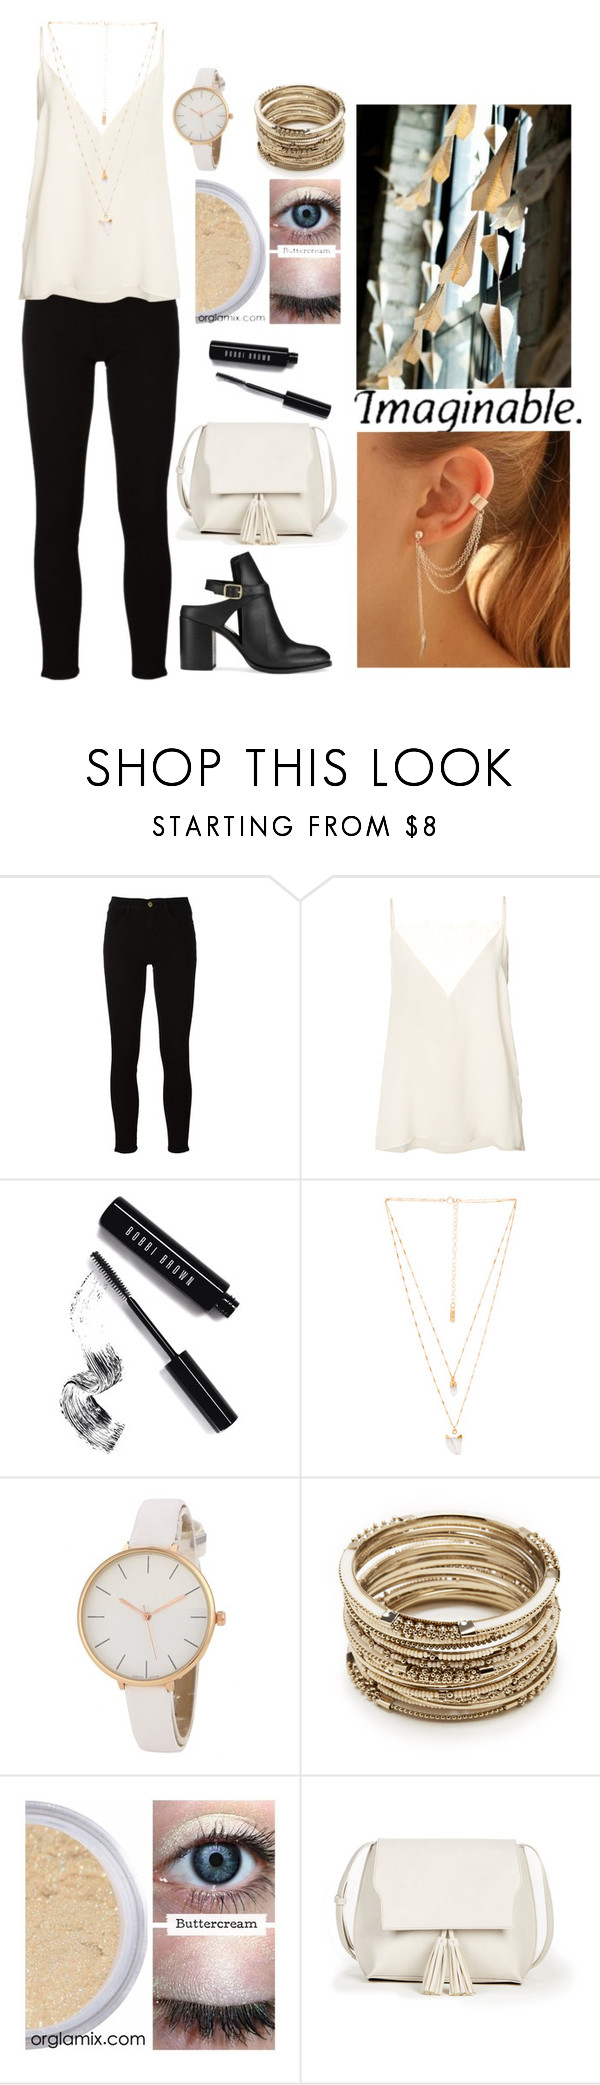 """""""It was about 8 years ago, don't act like you don't know"""" by marcykxx ❤ liked on Polyvore featuring Frame, Anine Bing, Bobbi Brown Cosmetics, Natalie B, Sole Society and Miss Selfridge"""